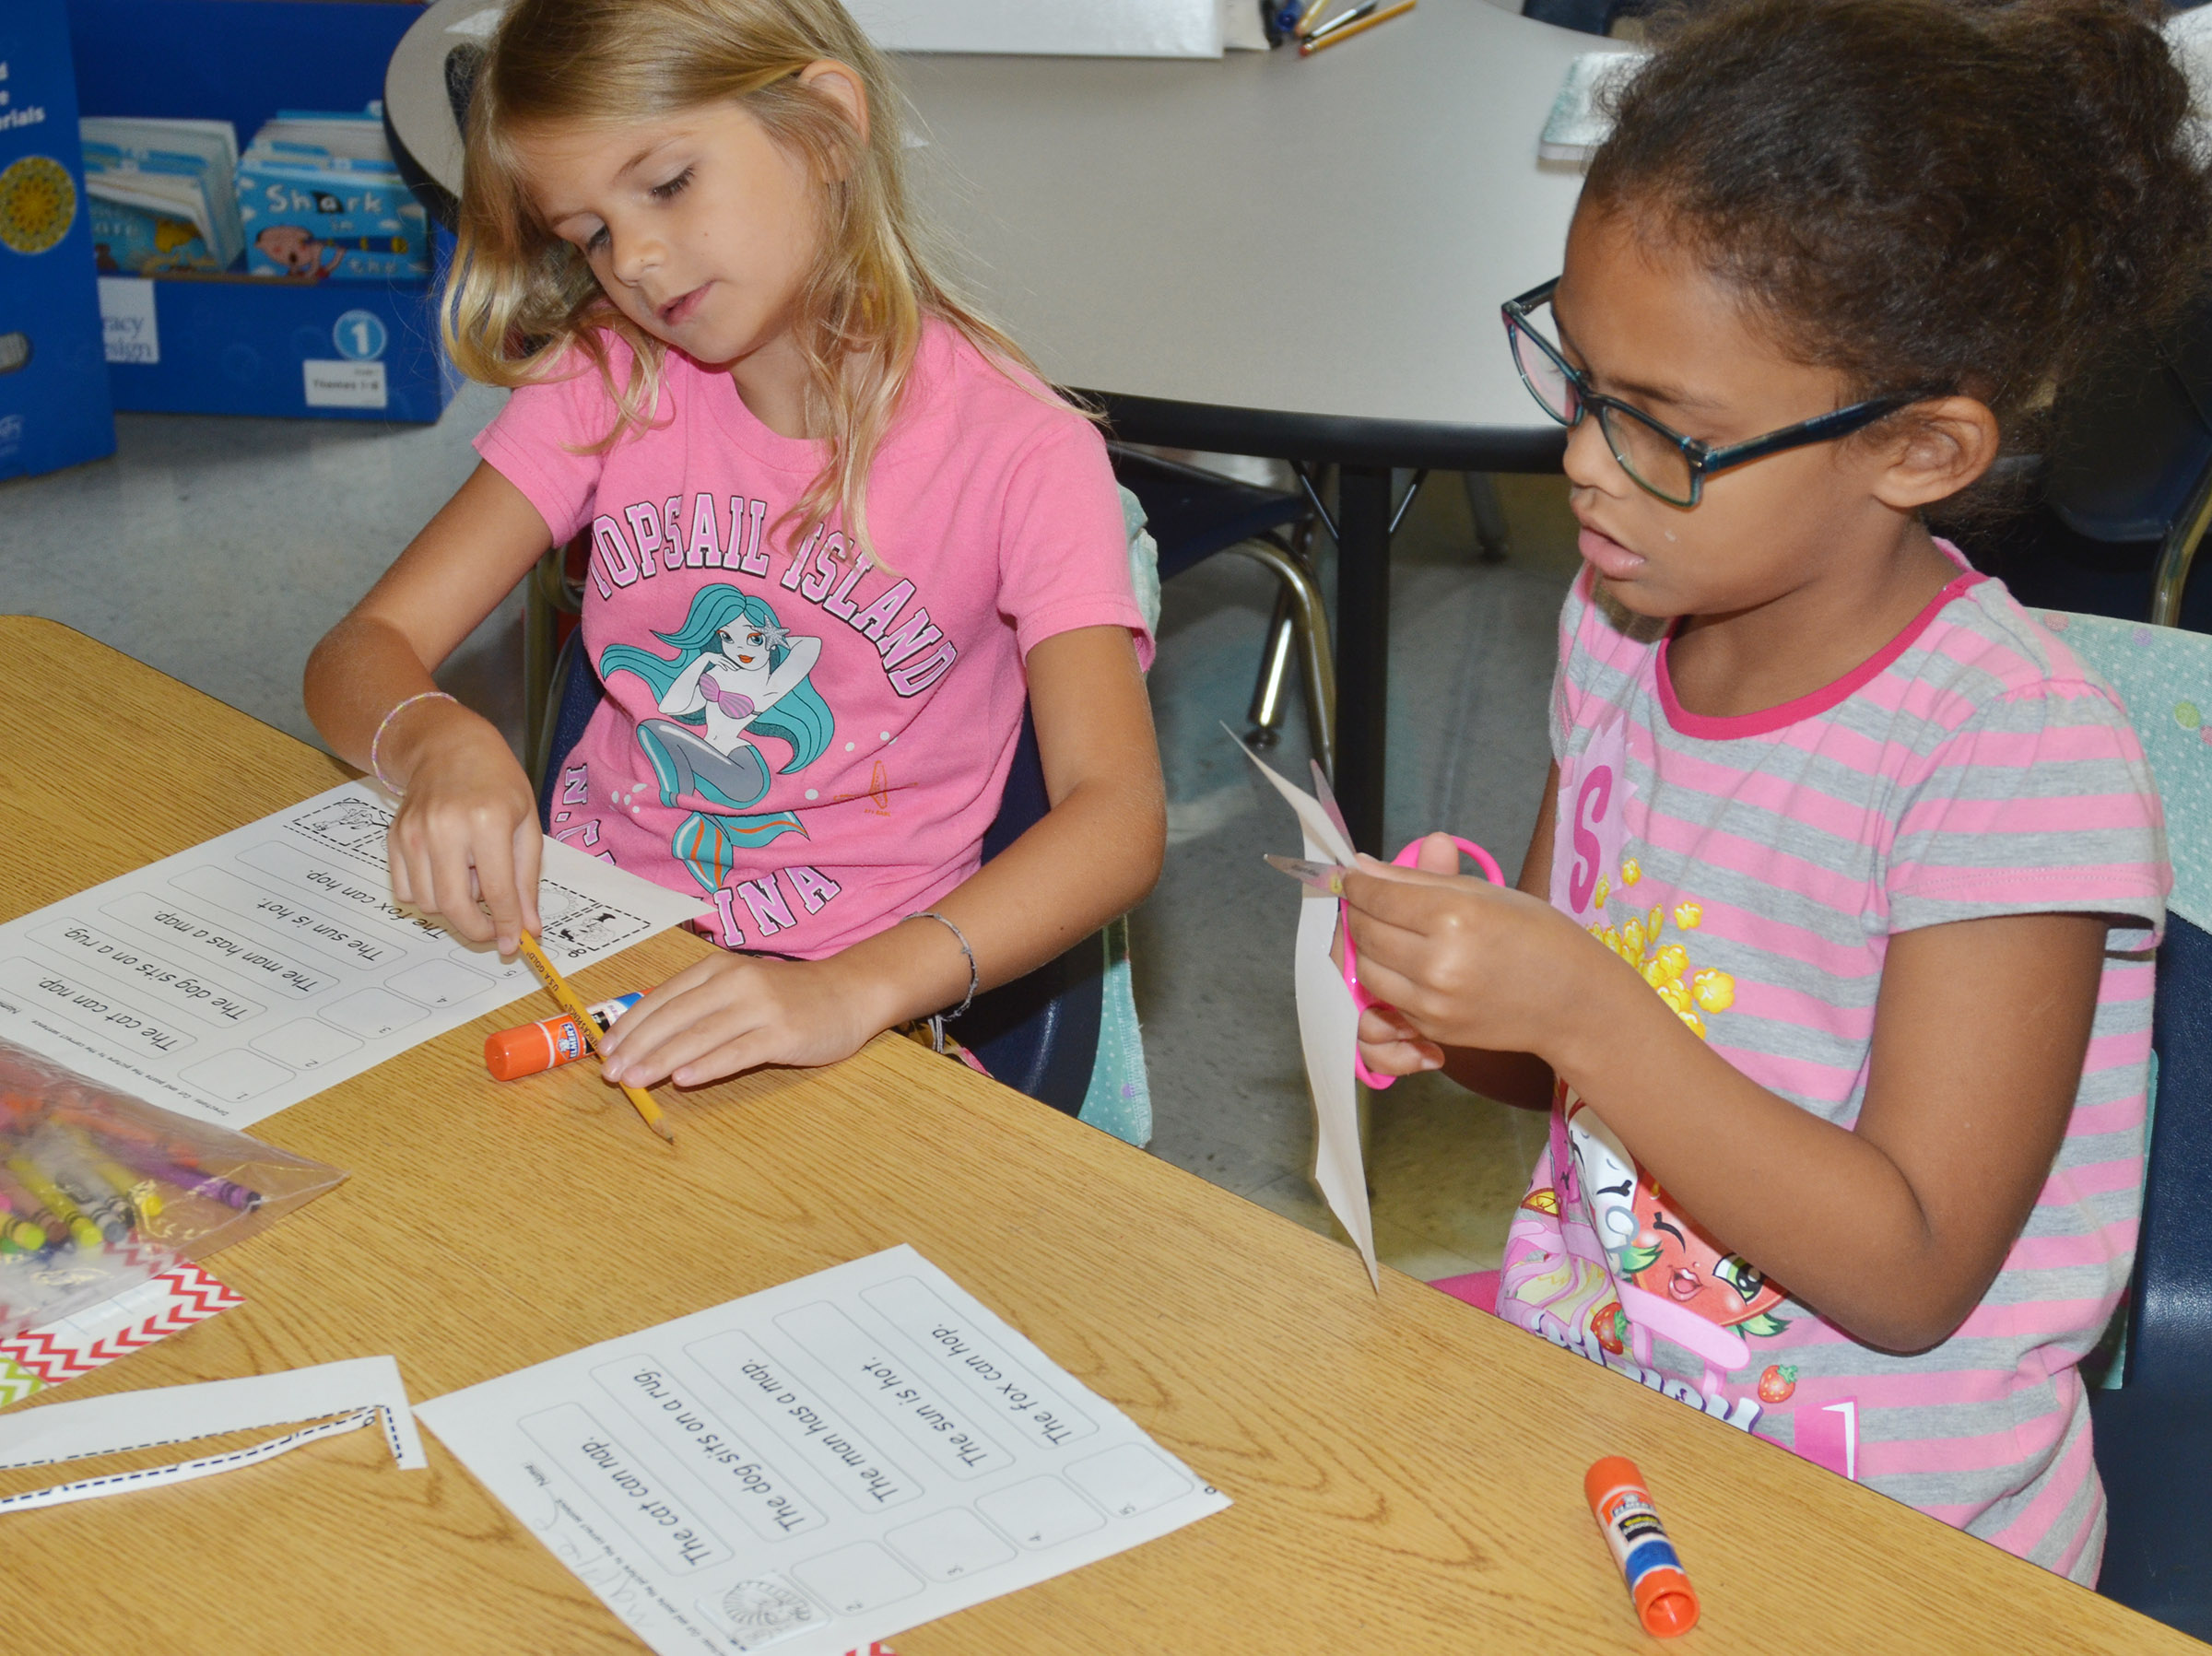 CES first-graders Gracie Gebler, at left, and Marlee Dickens work on their worksheets.